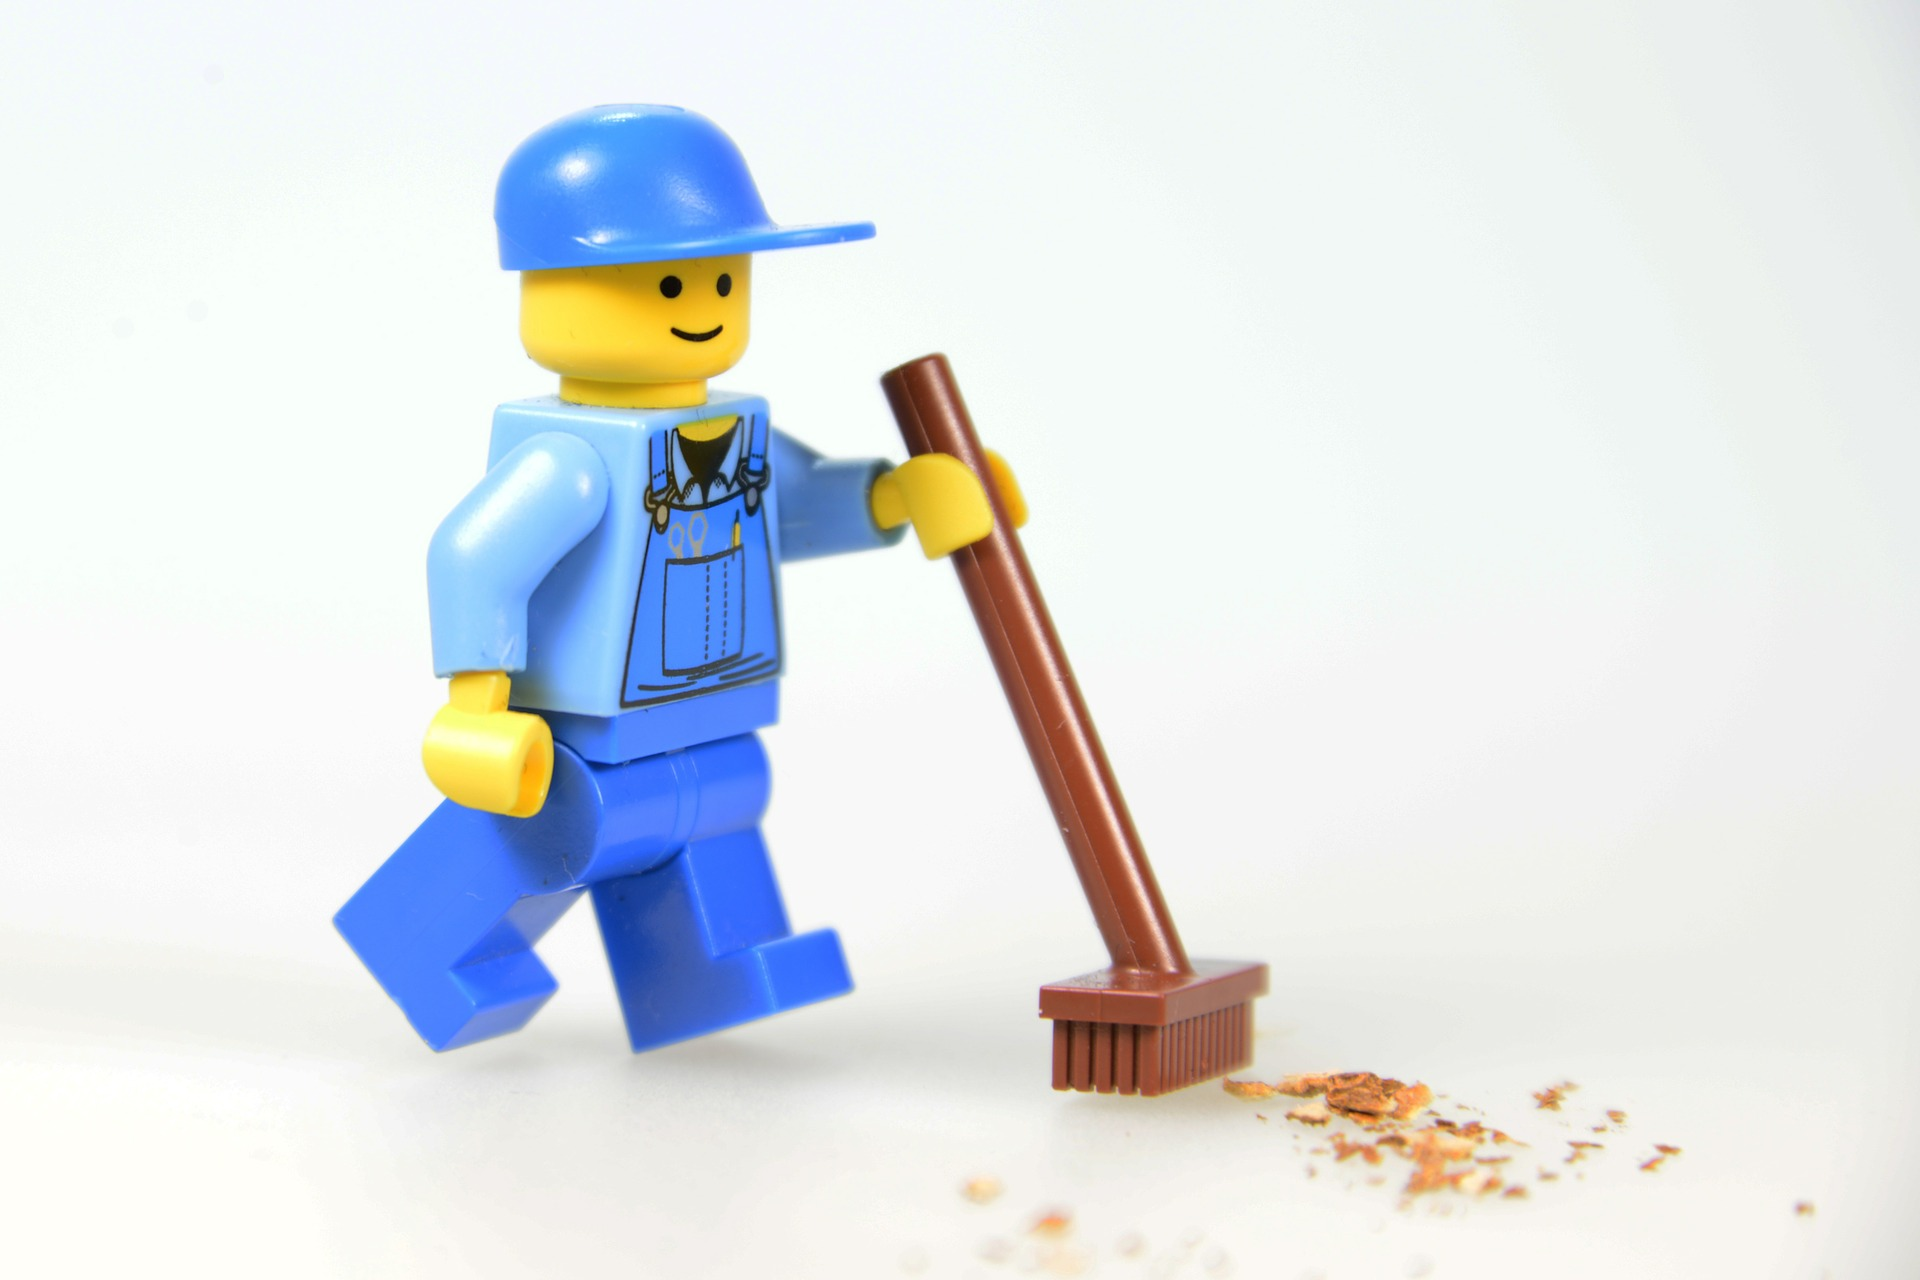 Lego man sweeping